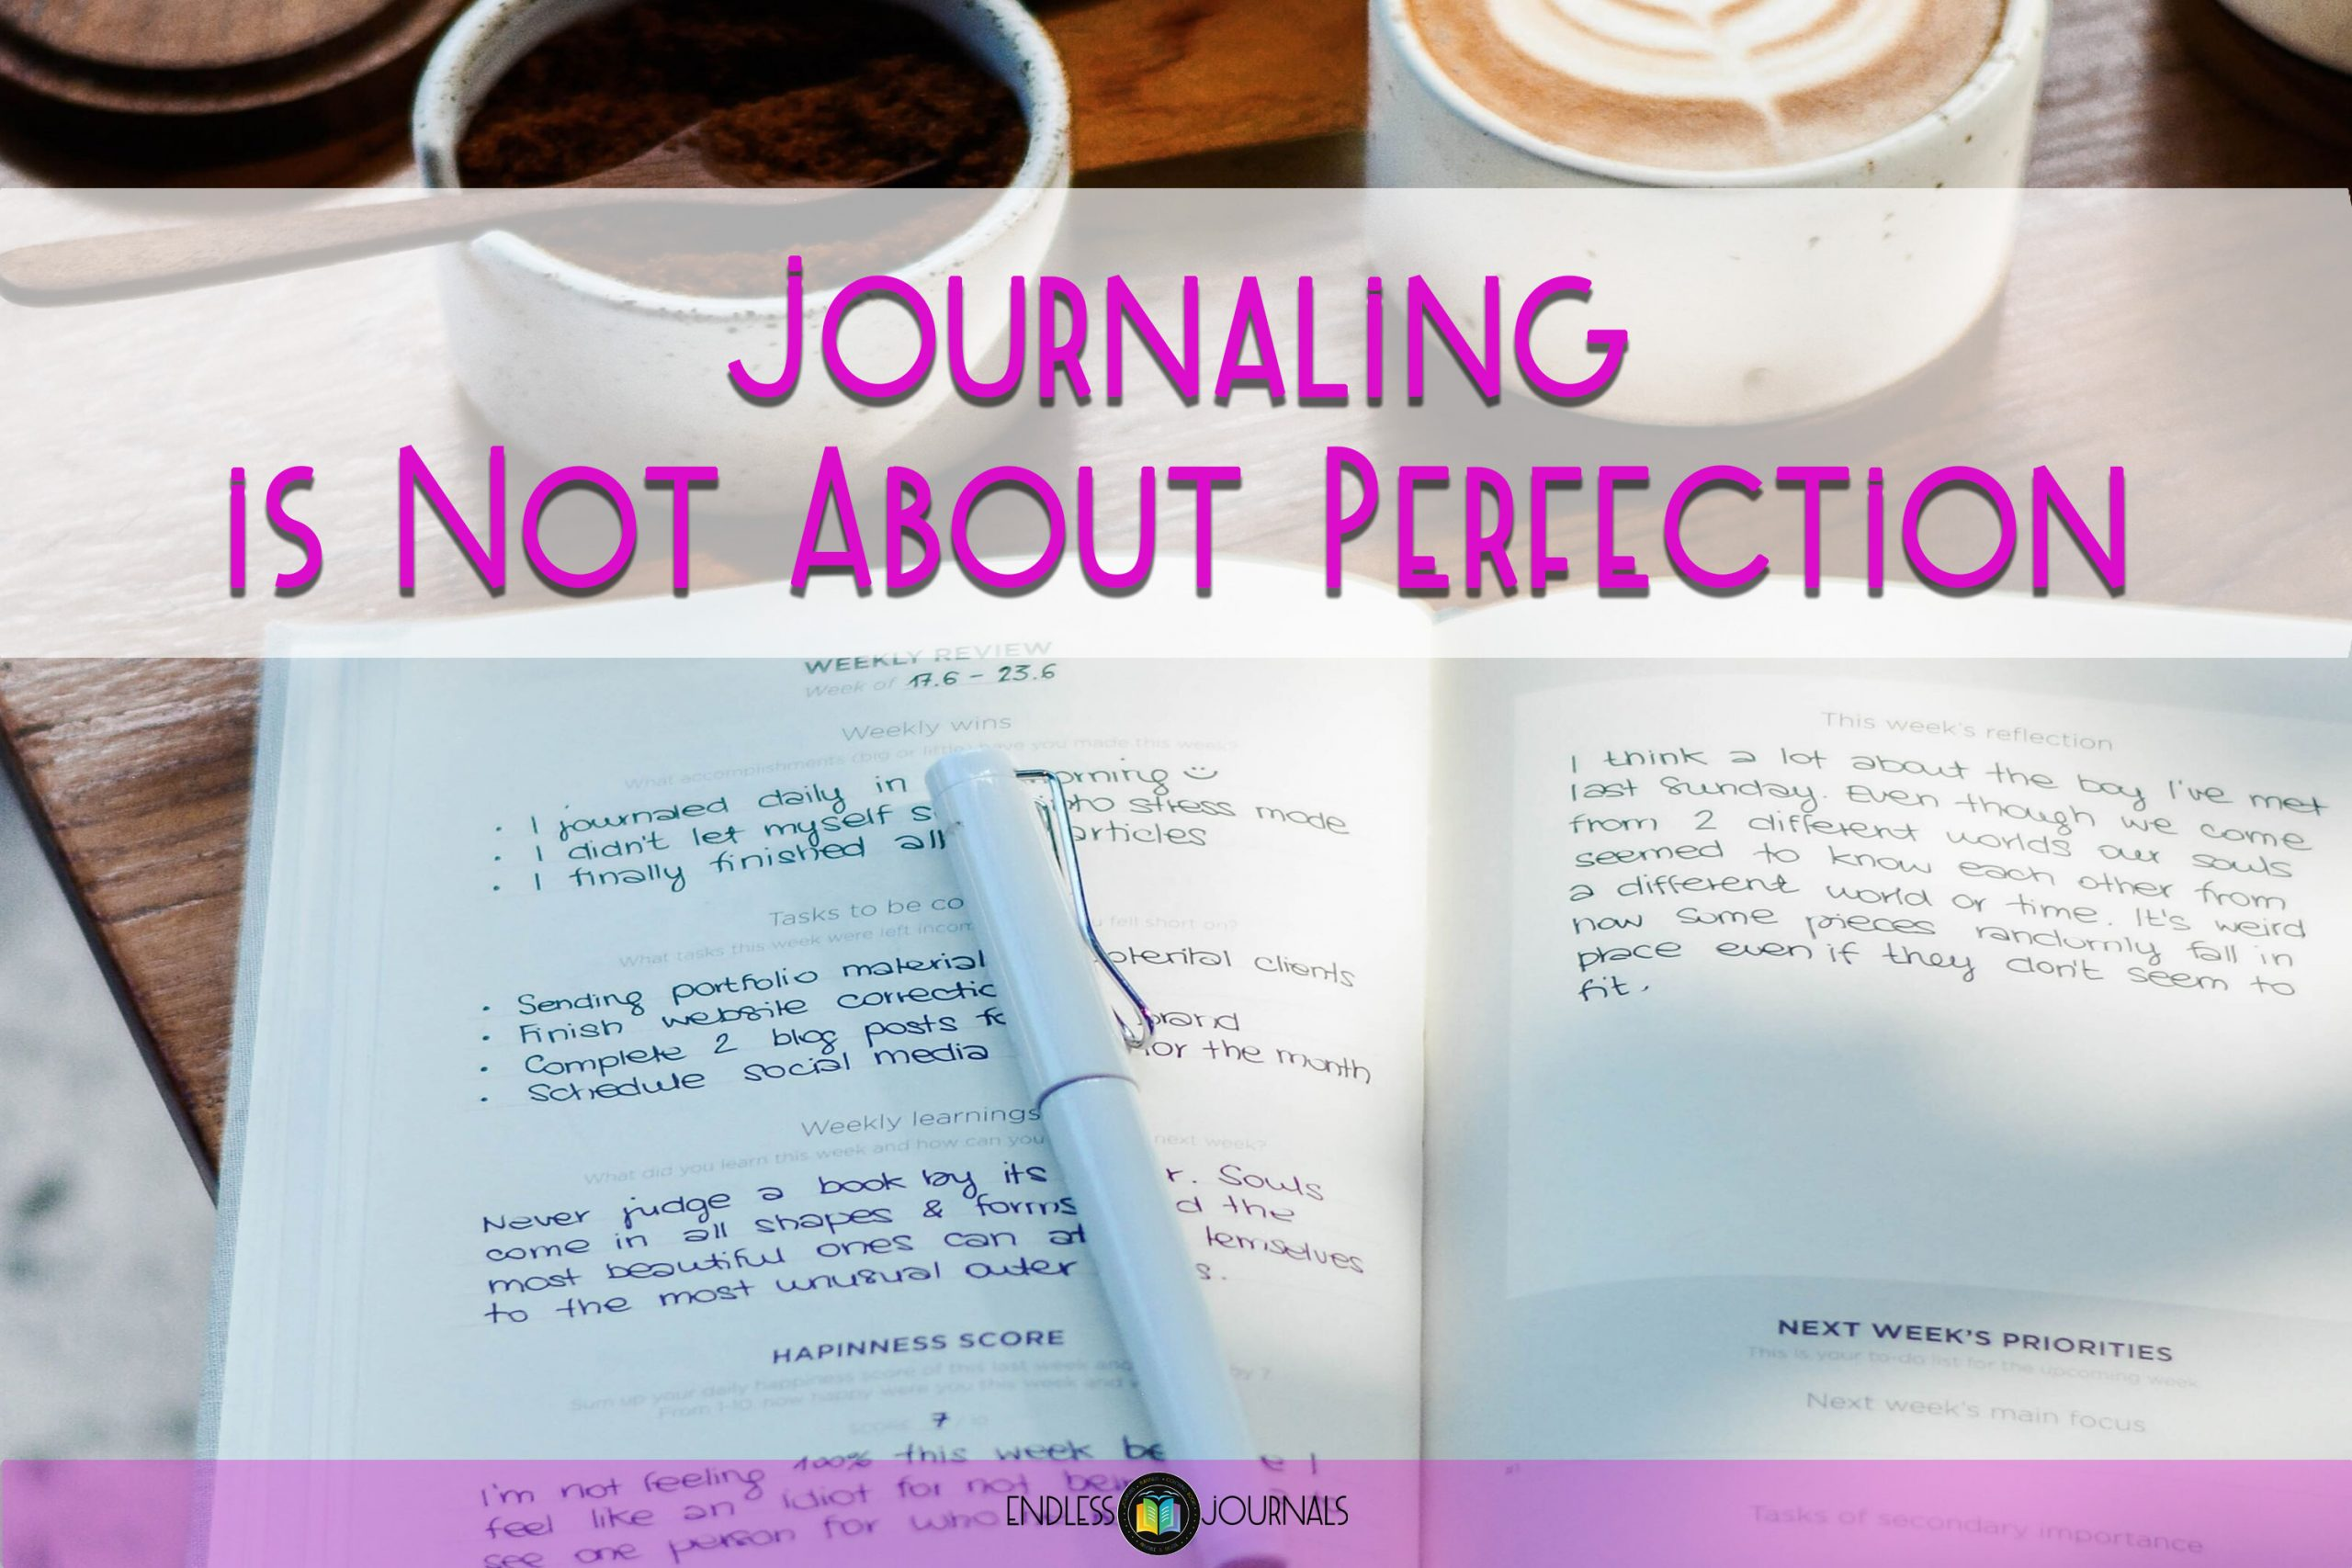 Journaling is not about perfection